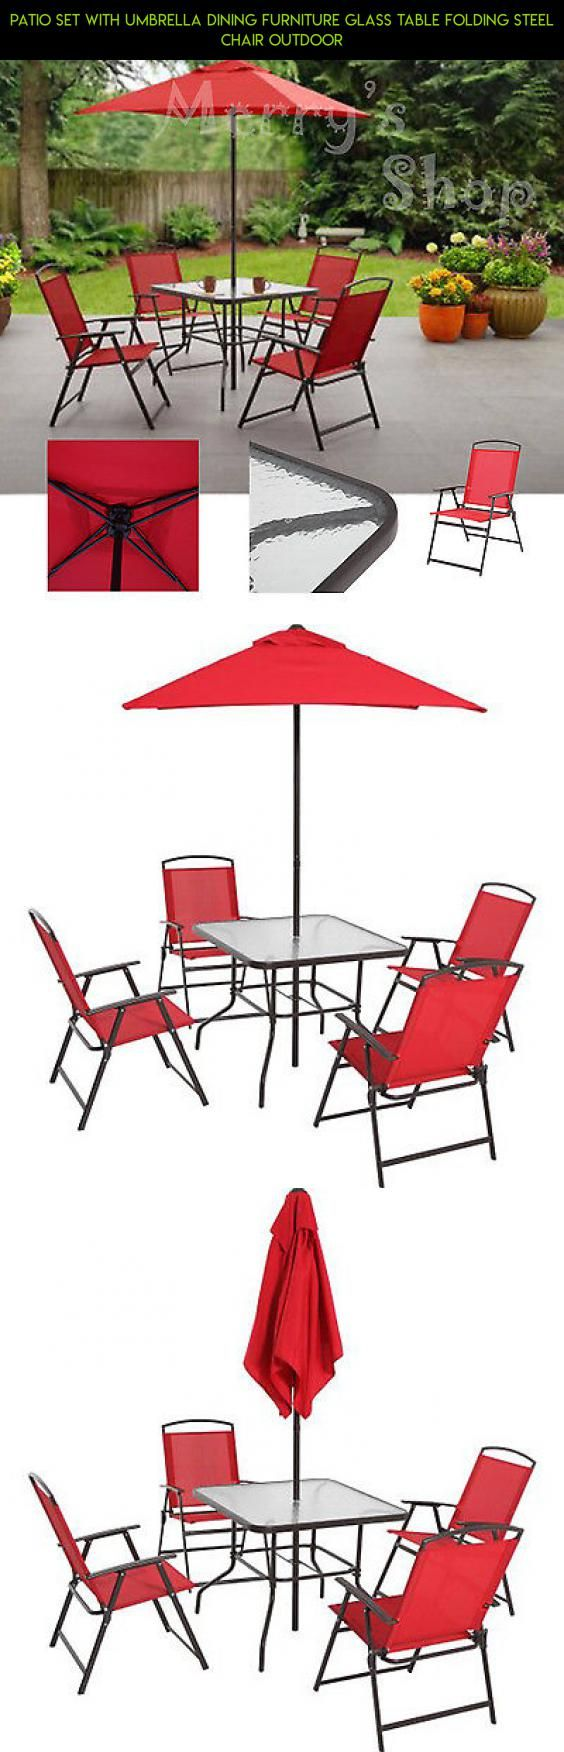 Patio Set With Umbrella Dining Furniture Glass Table Folding Steel Chair Outdoor #parts #shopping #technology #camera #fpv #drone #patio #with #plans #kit #racing #tech #gadgets #furniture #products #umbrella